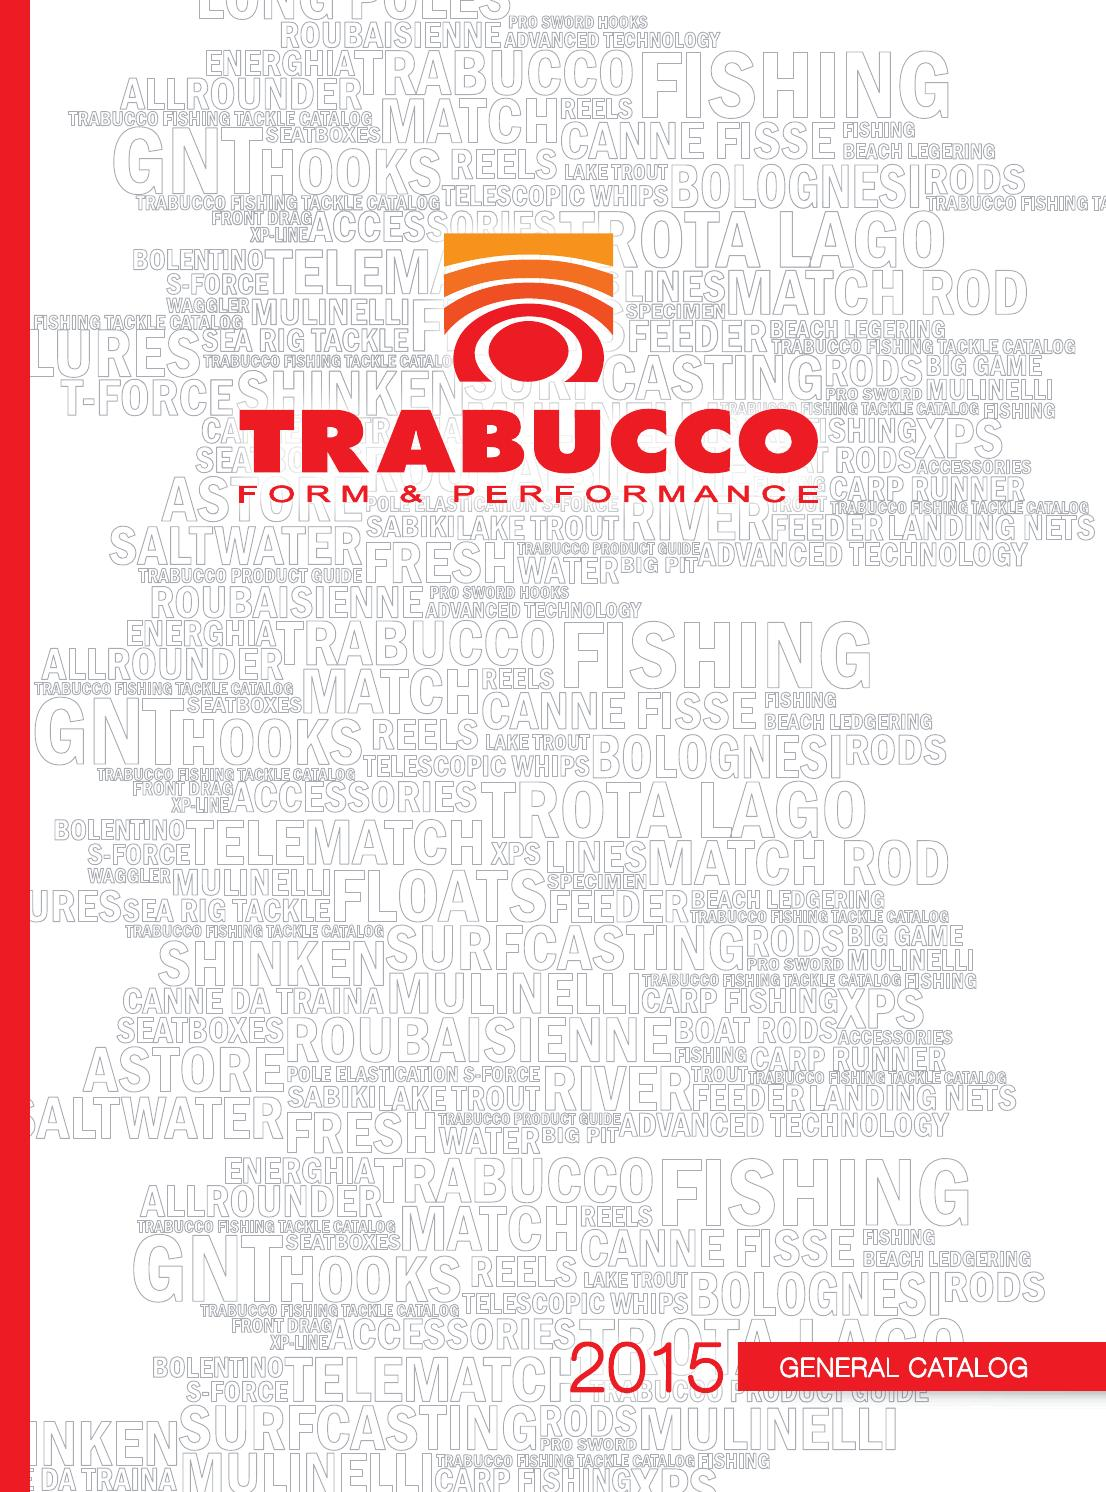 Trabucco Fishing Diffusion Catalogue 2015 Europe by Trabucco